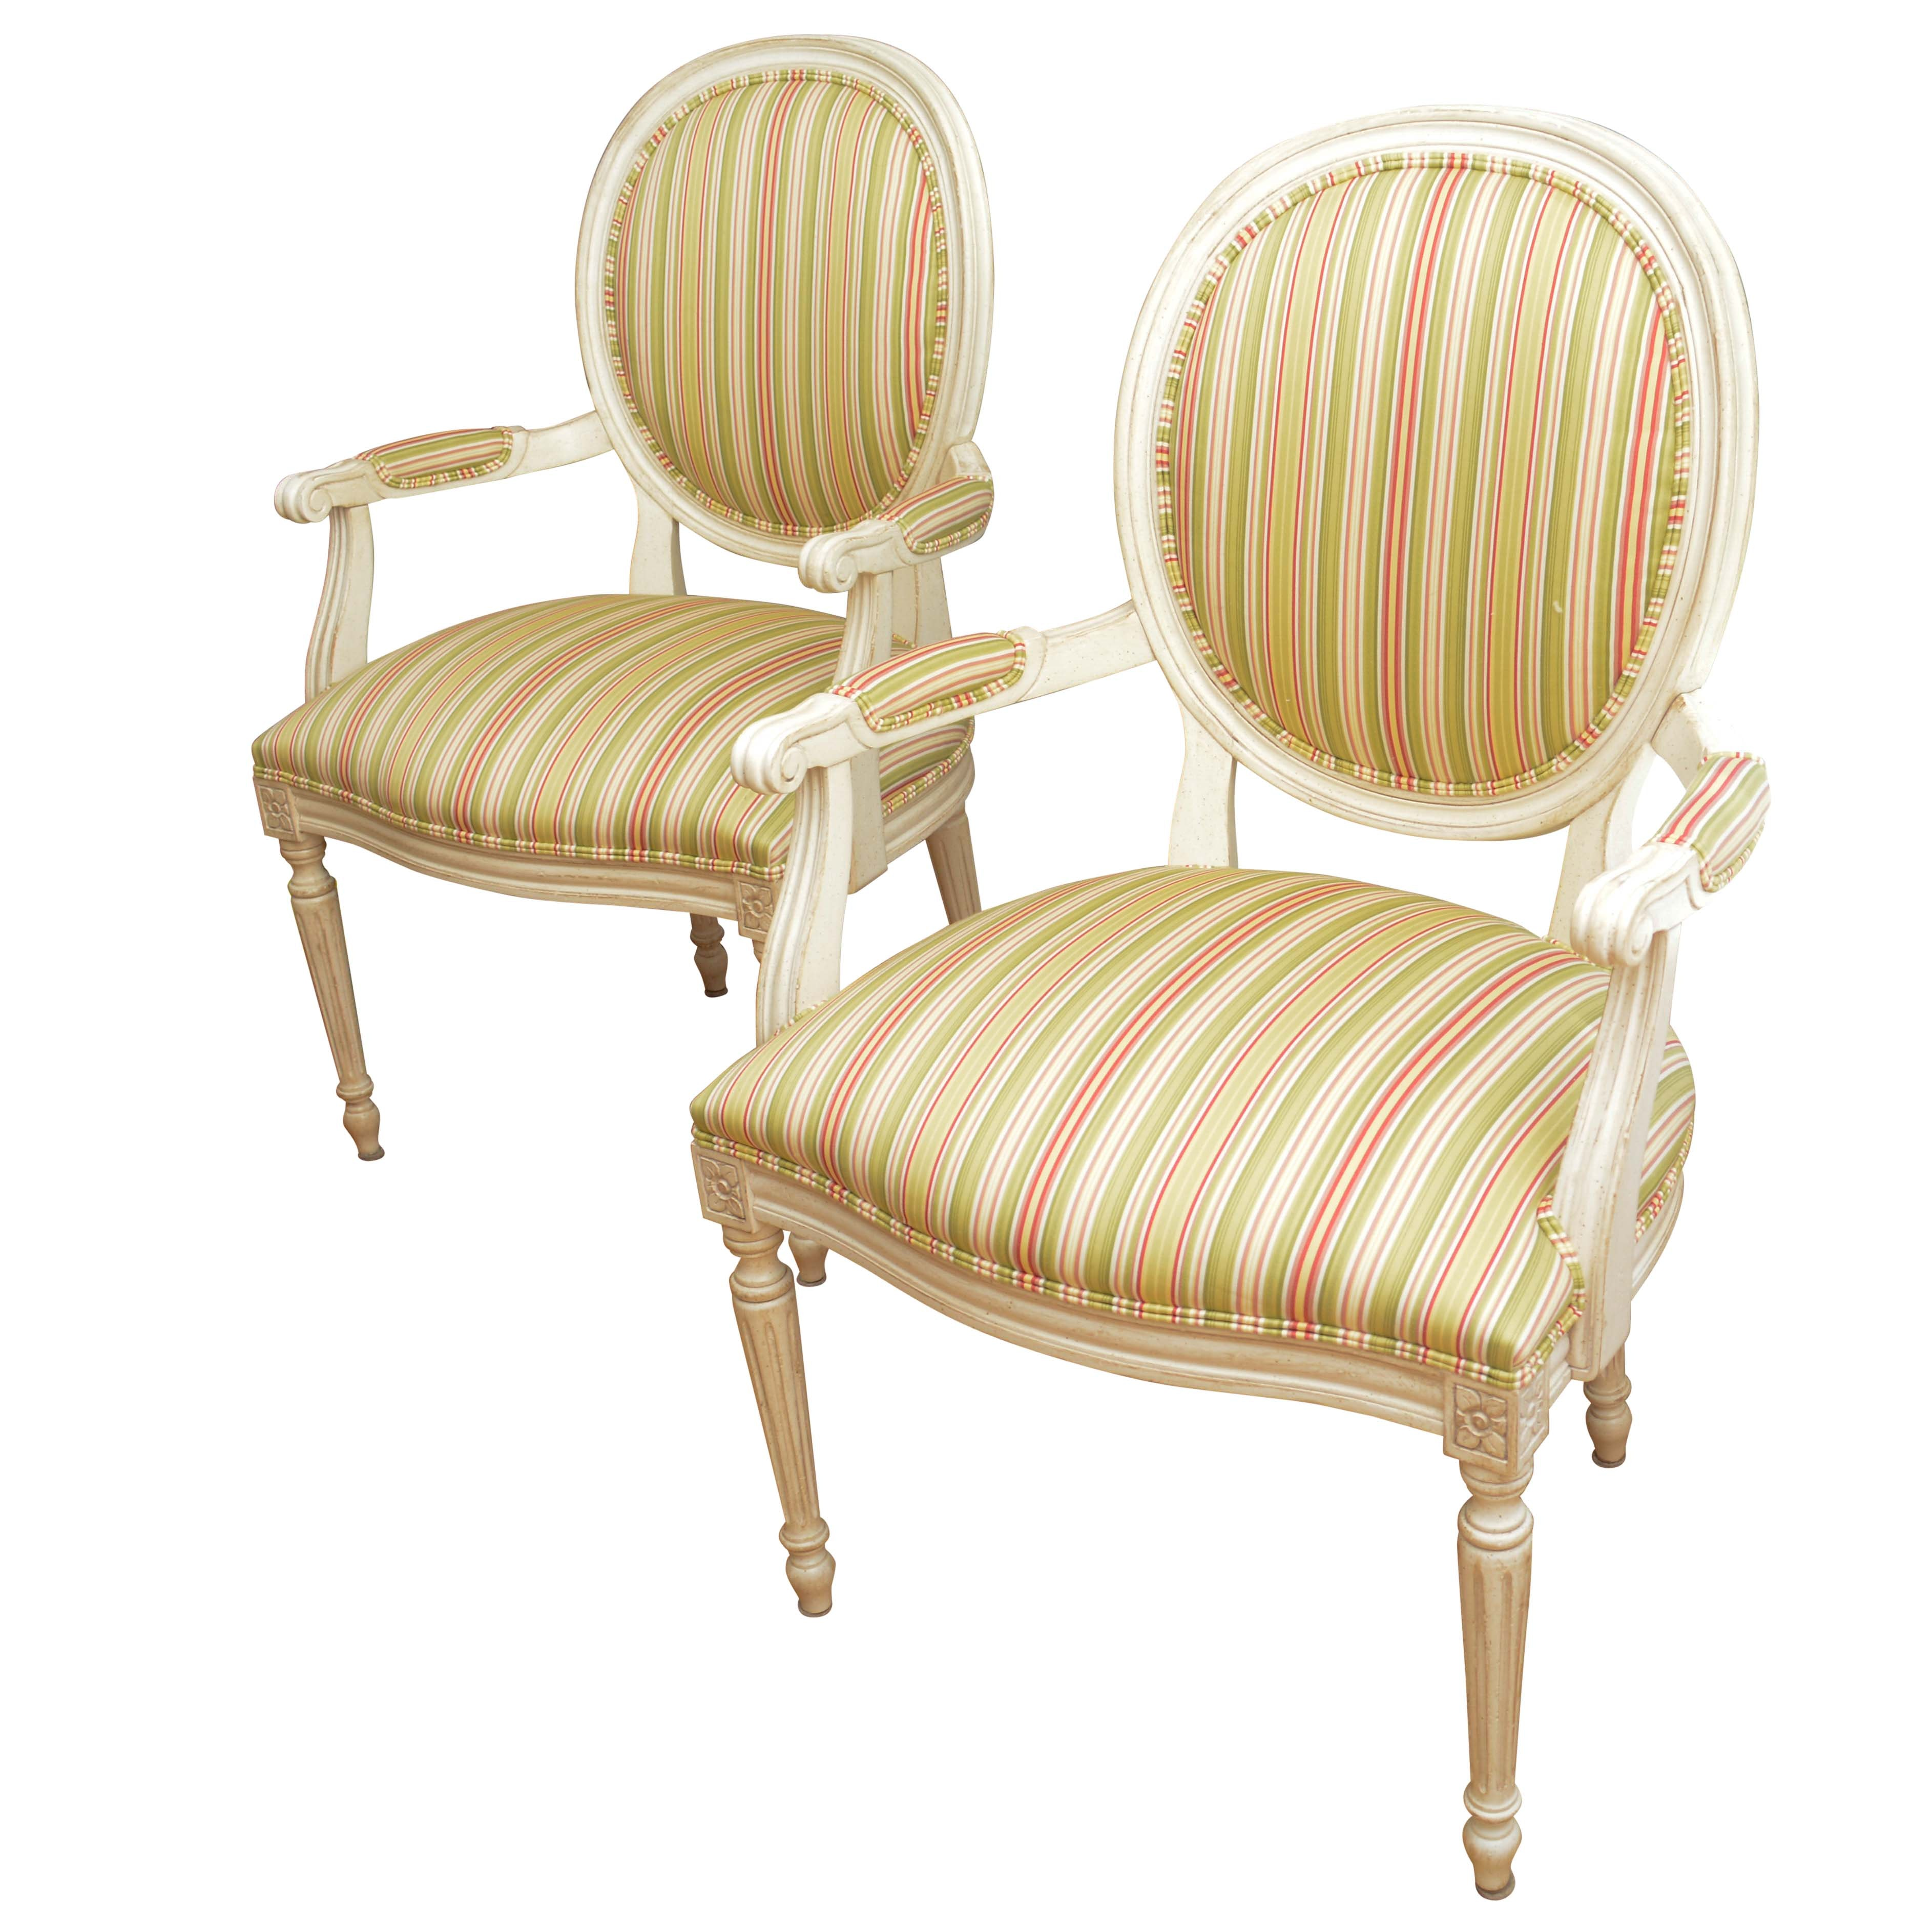 Pair of French Style Armchairs by Ethan Allen